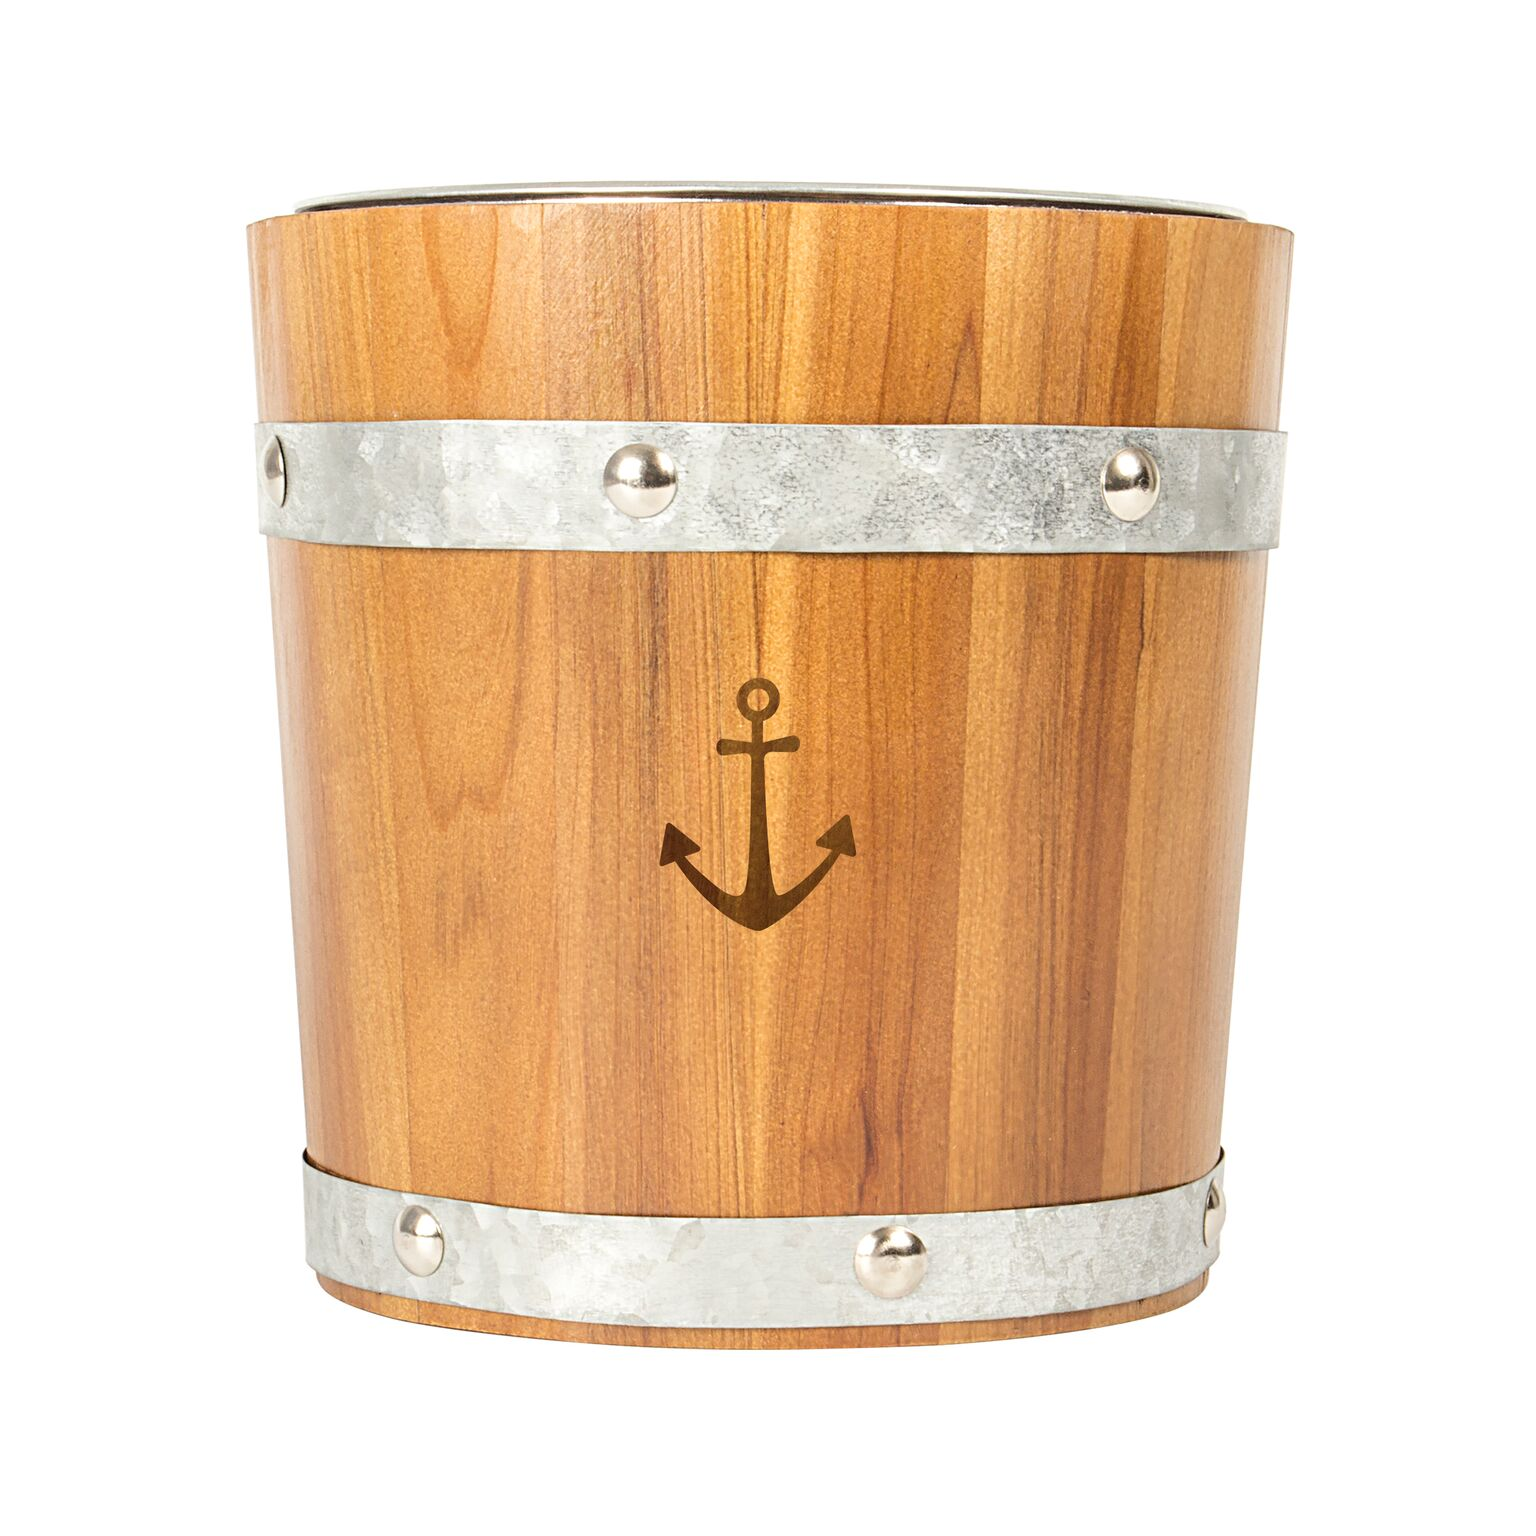 Cathys Concepts ACH-2292 Rustic Anchor Ice Bucket